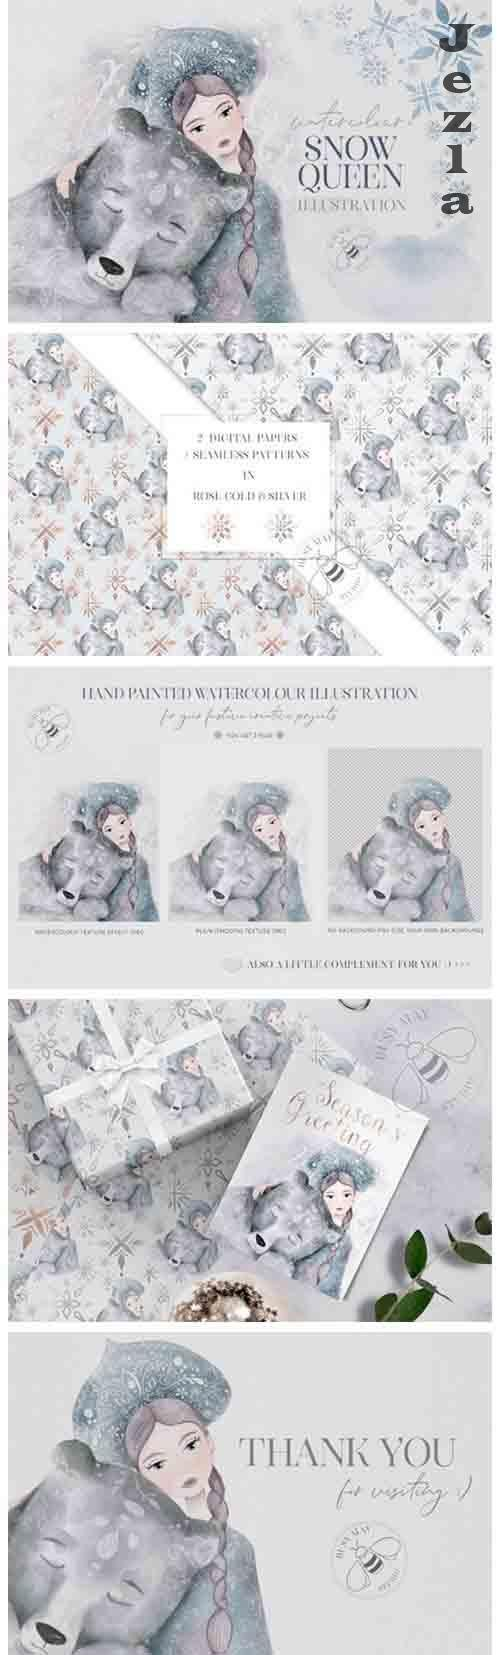 Watercolor Winter Christmas Snow Queen Illustration Bear PNG - 1057325